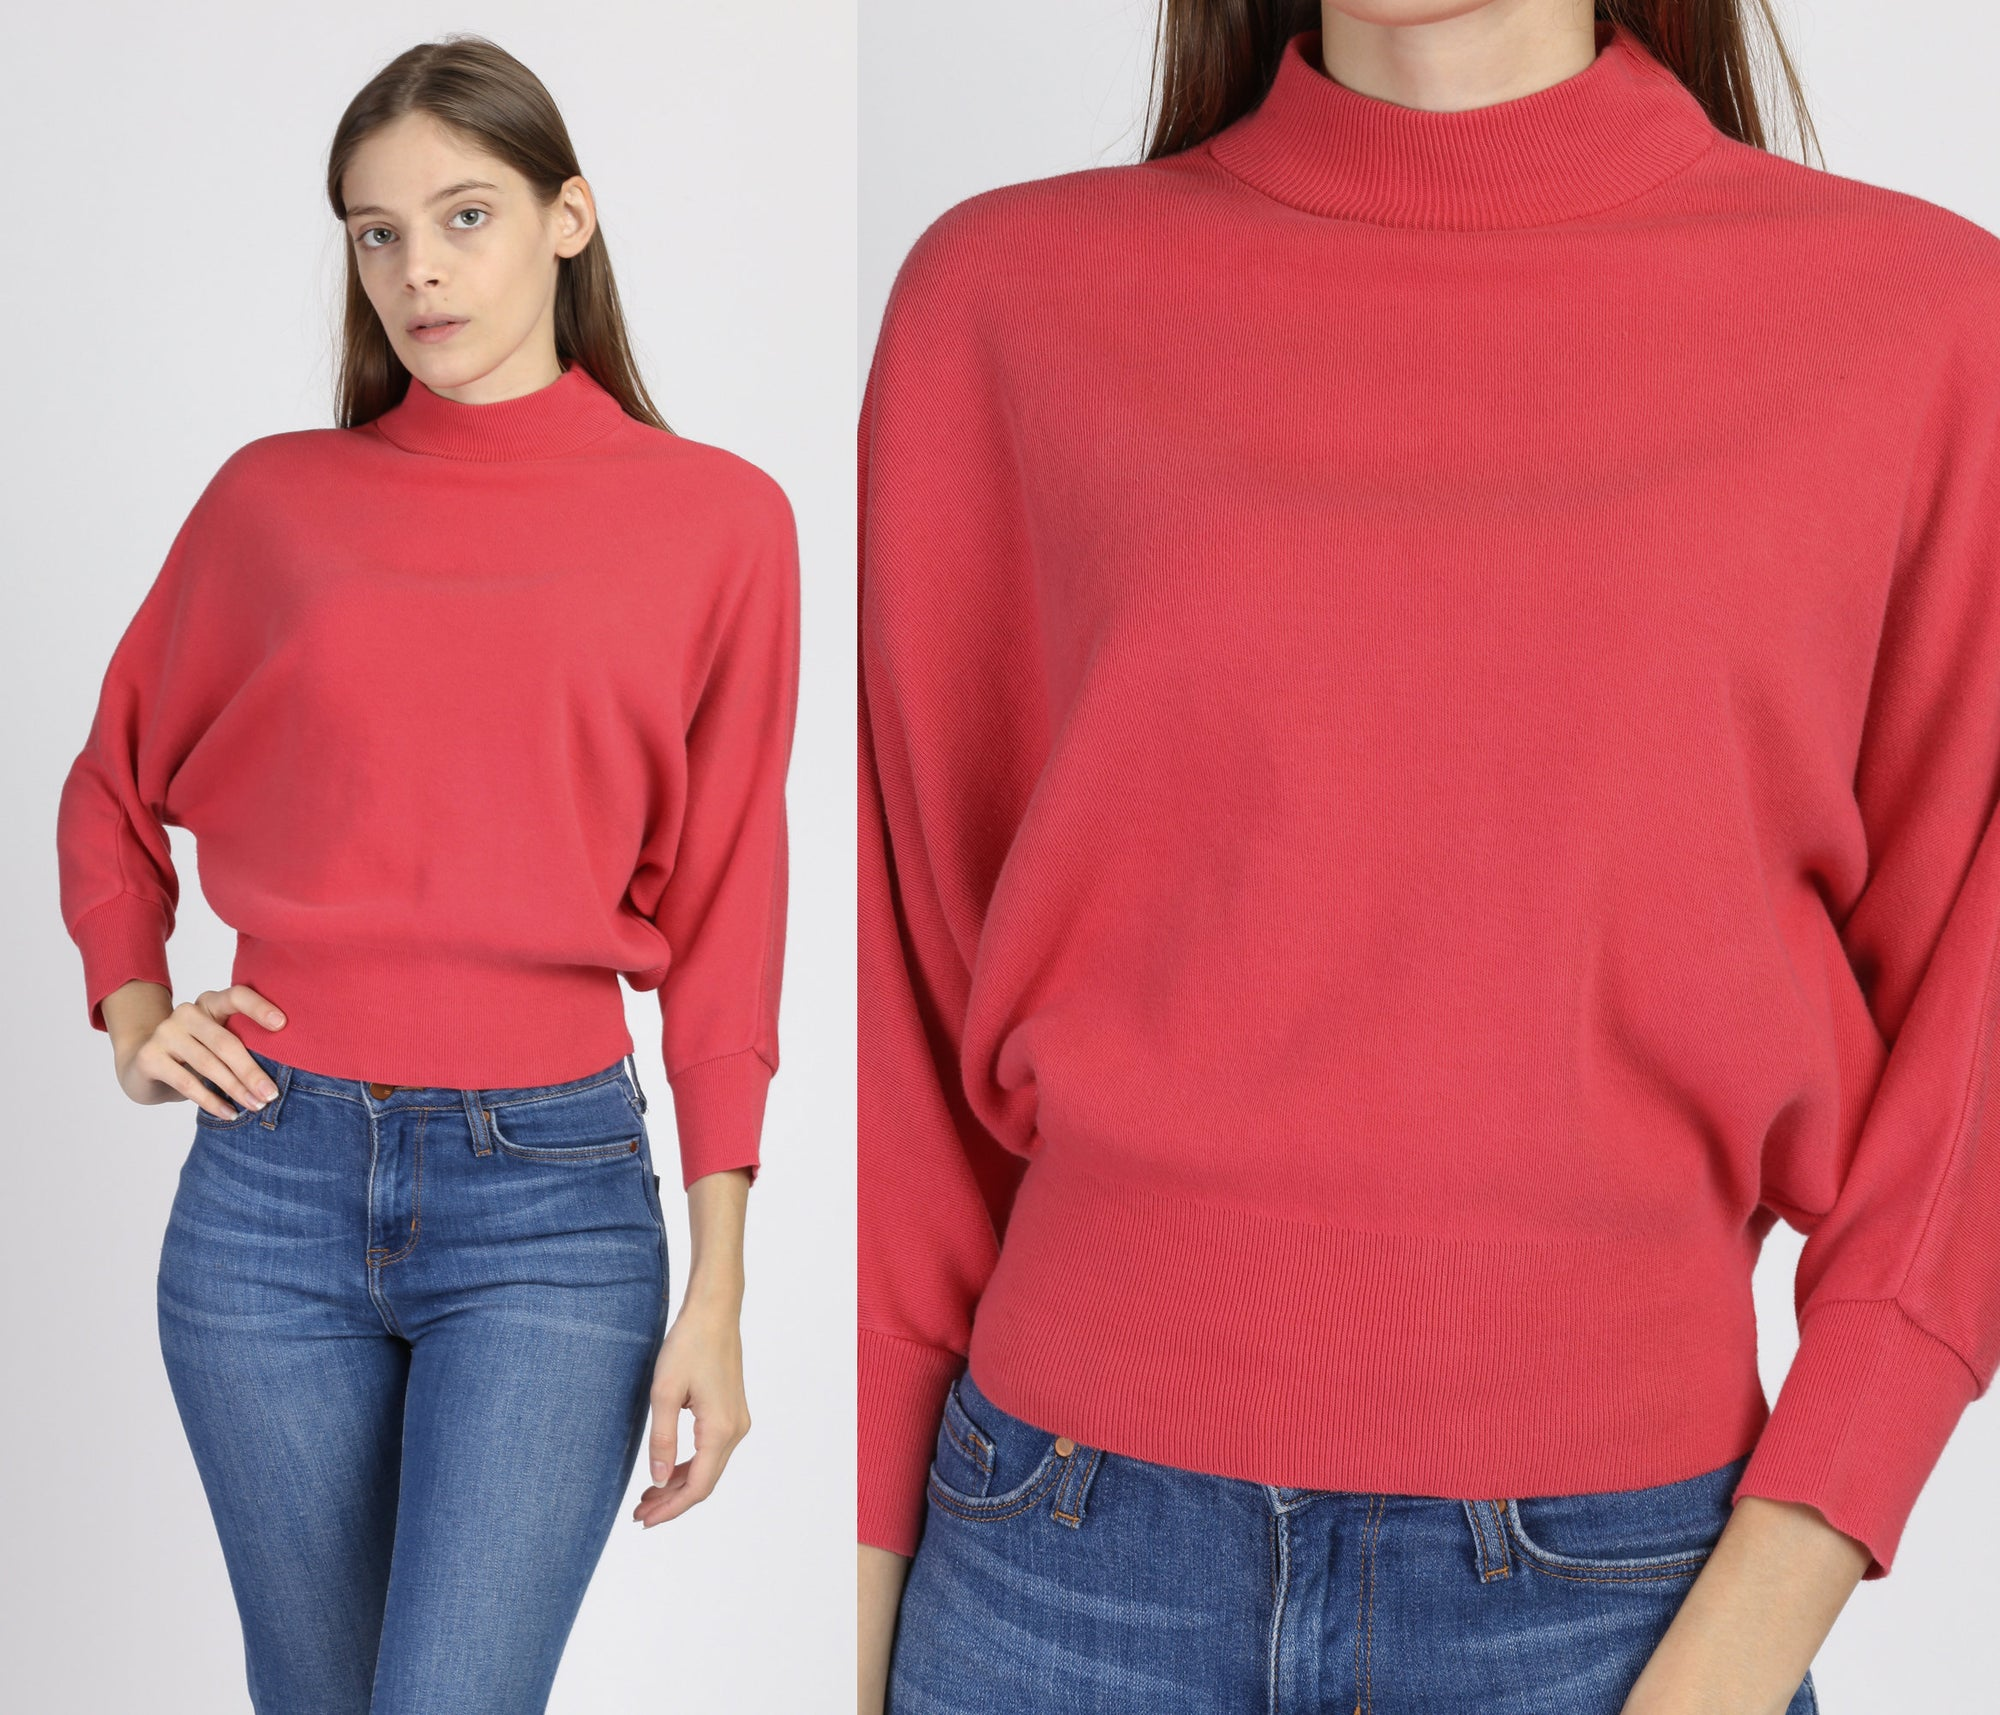 80s Pink Cropped Batwing Top - Petite Small